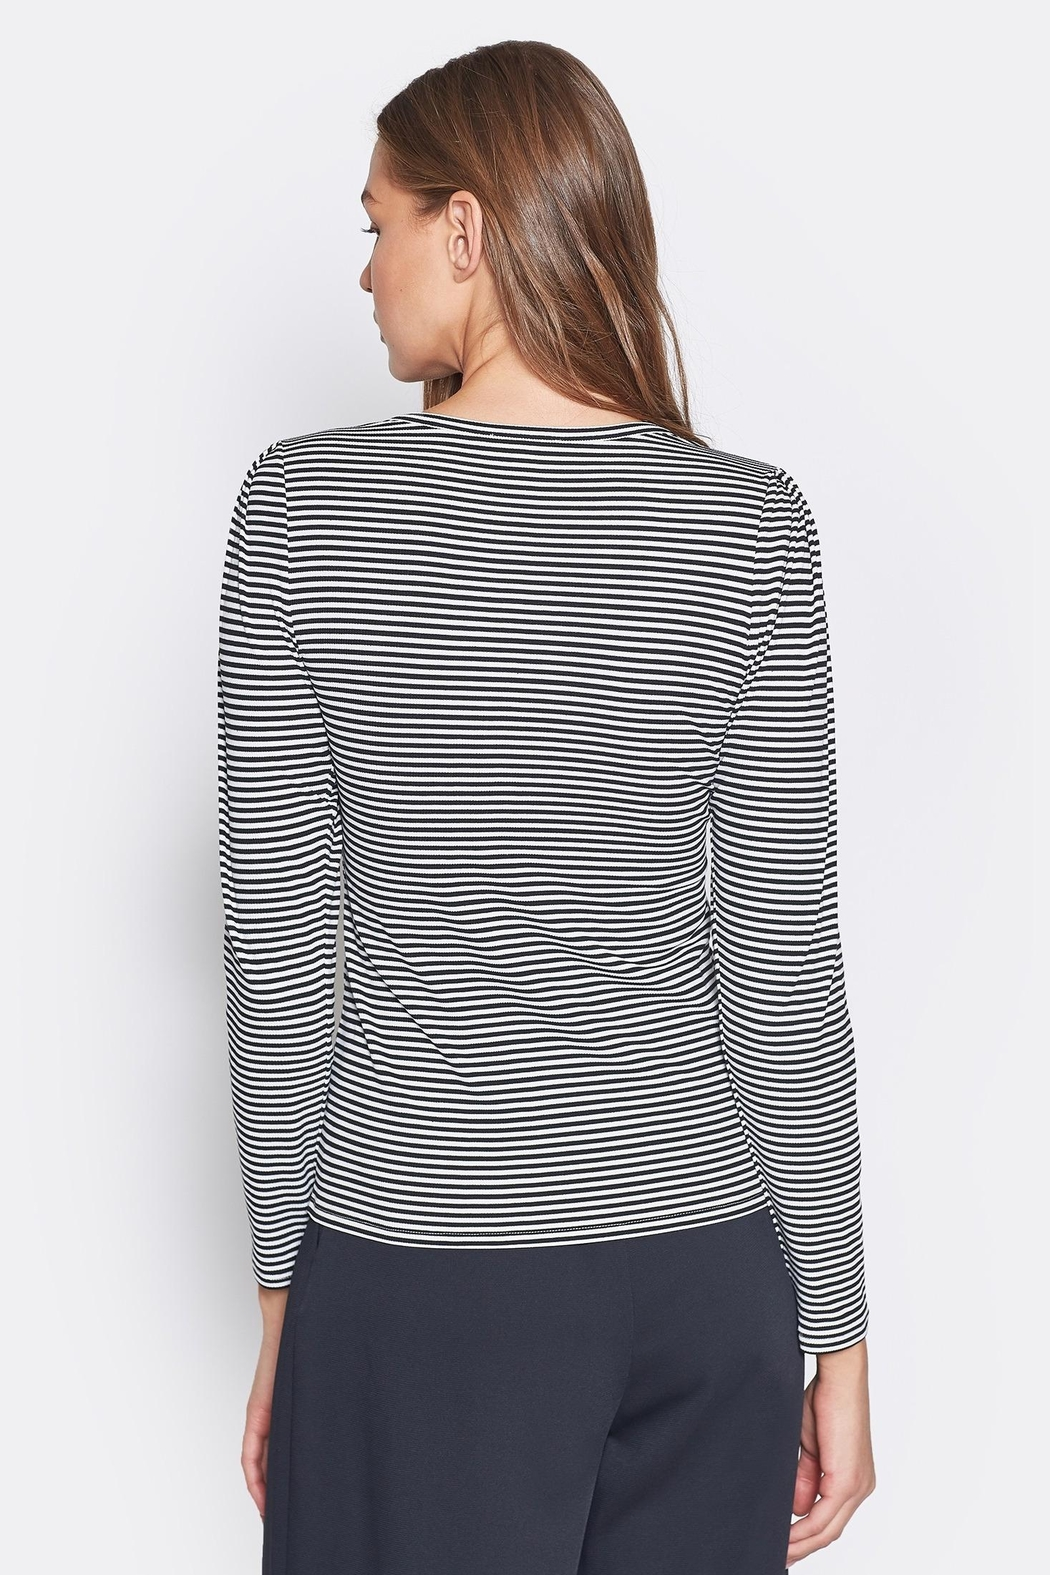 Joie Trula Top - Back Cropped Image